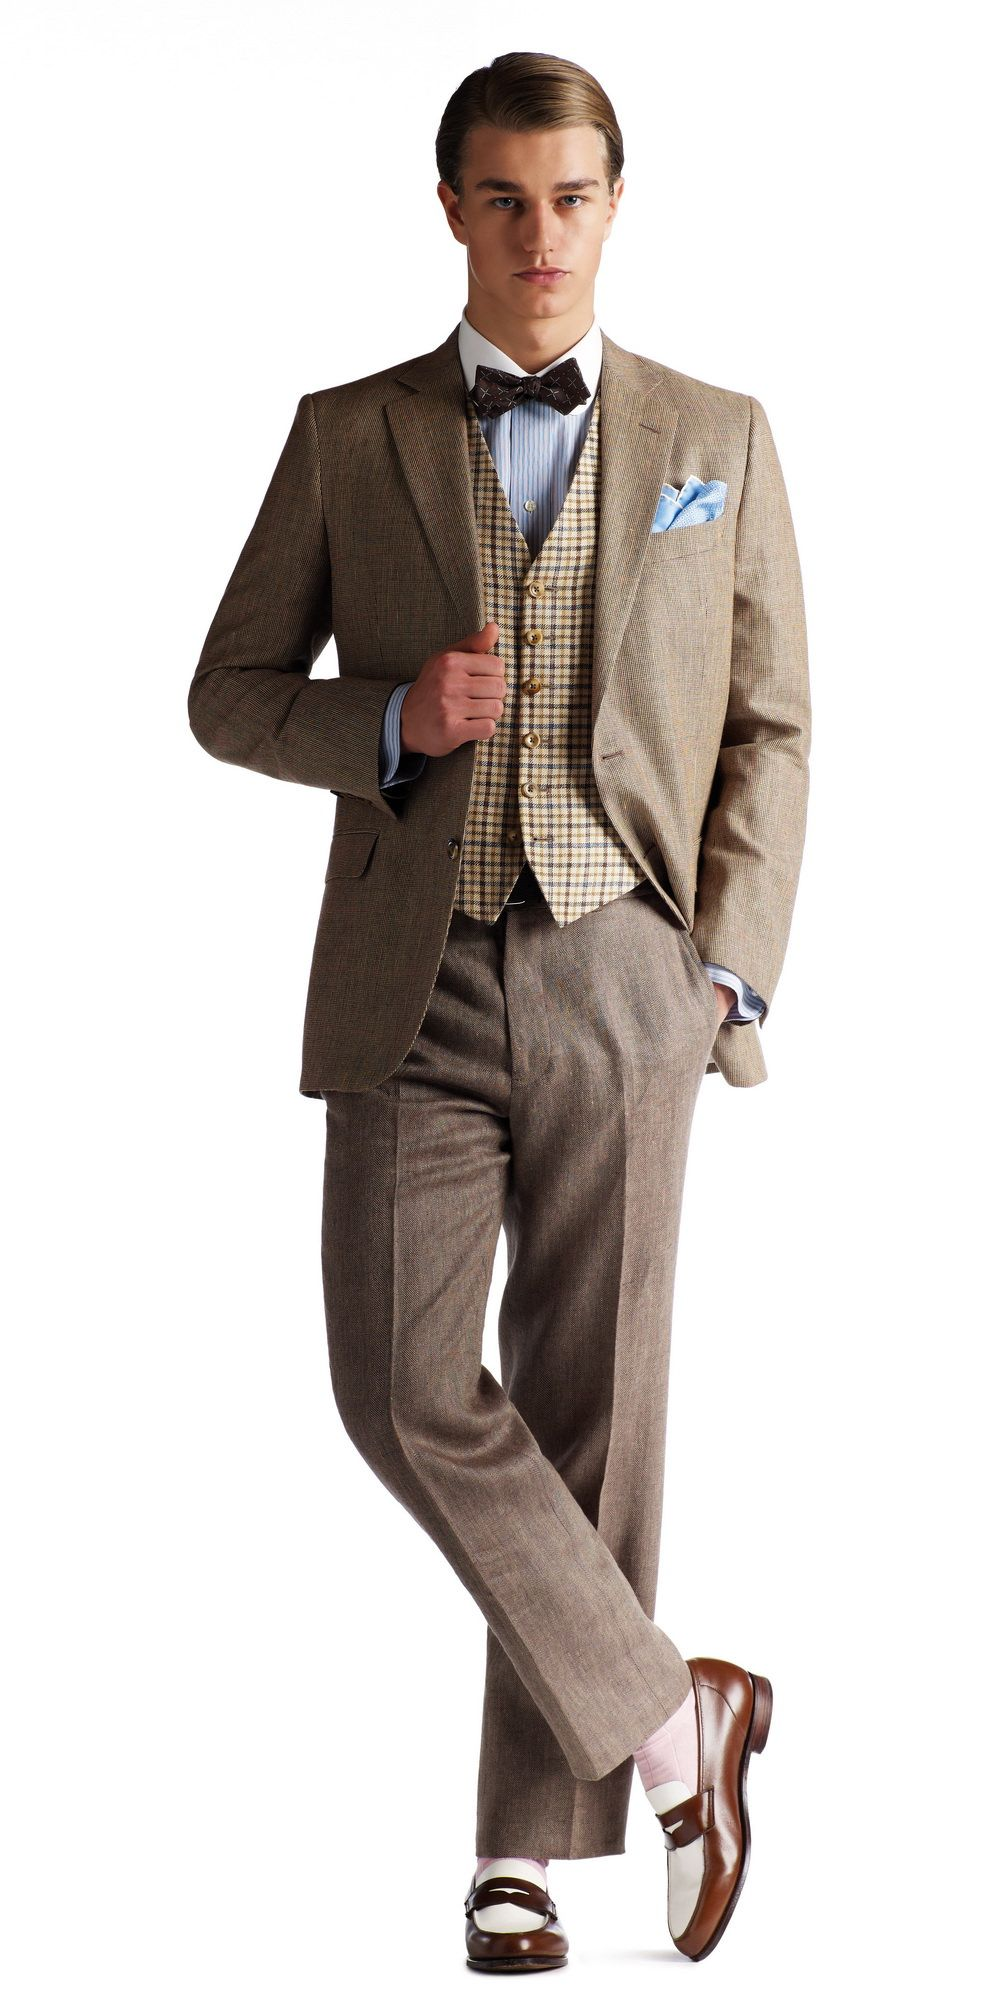 Gatsby, Men's fashion and Brooks brothers on Pinterest